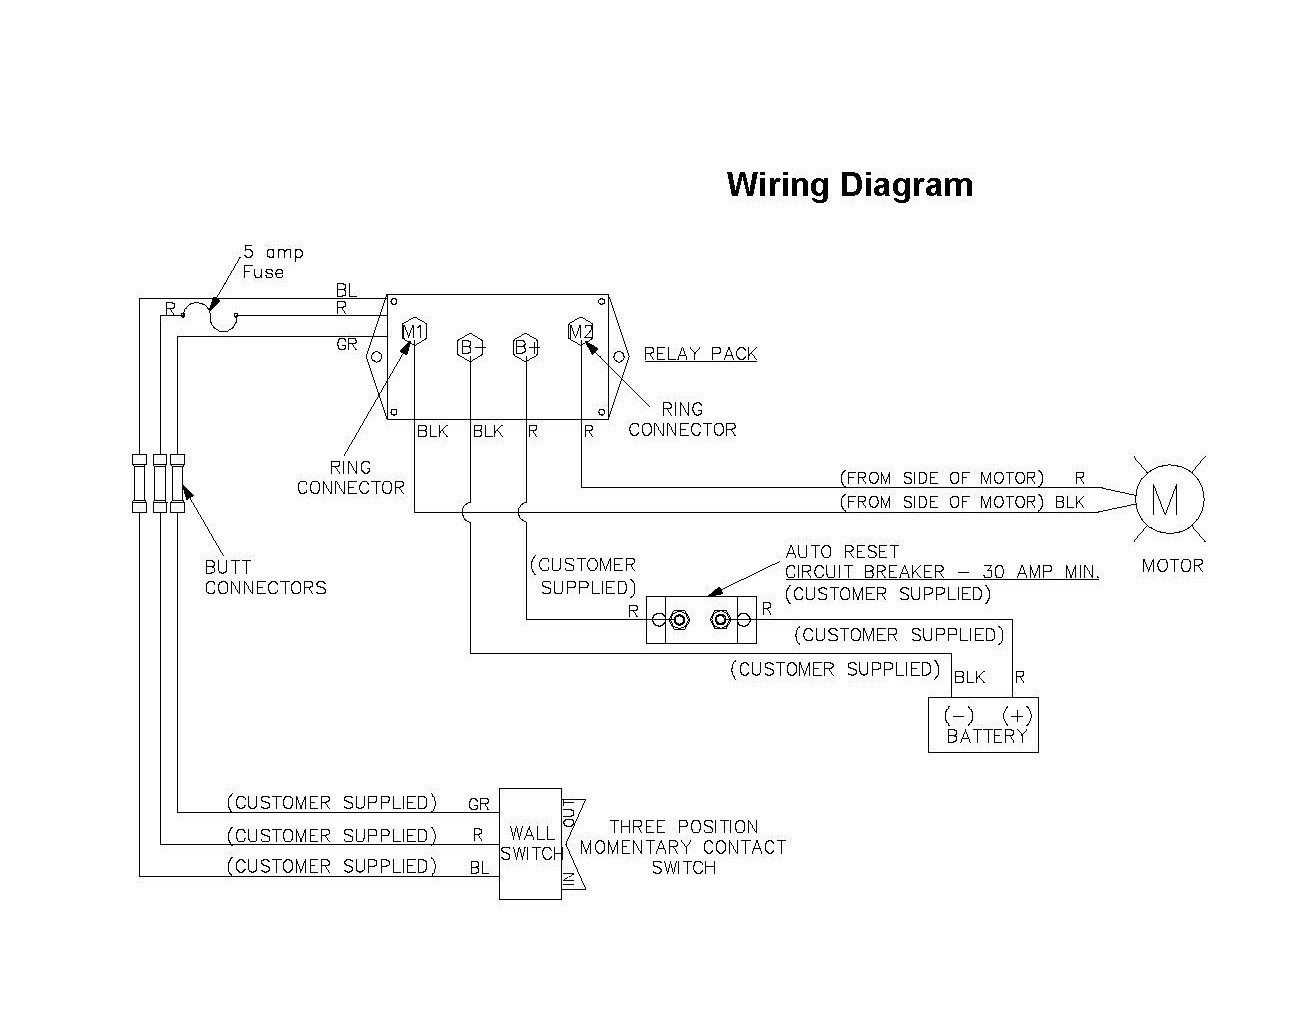 Tremendous Forest River Wiring Diagrams Basic Electronics Wiring Diagram Wiring Digital Resources Indicompassionincorg